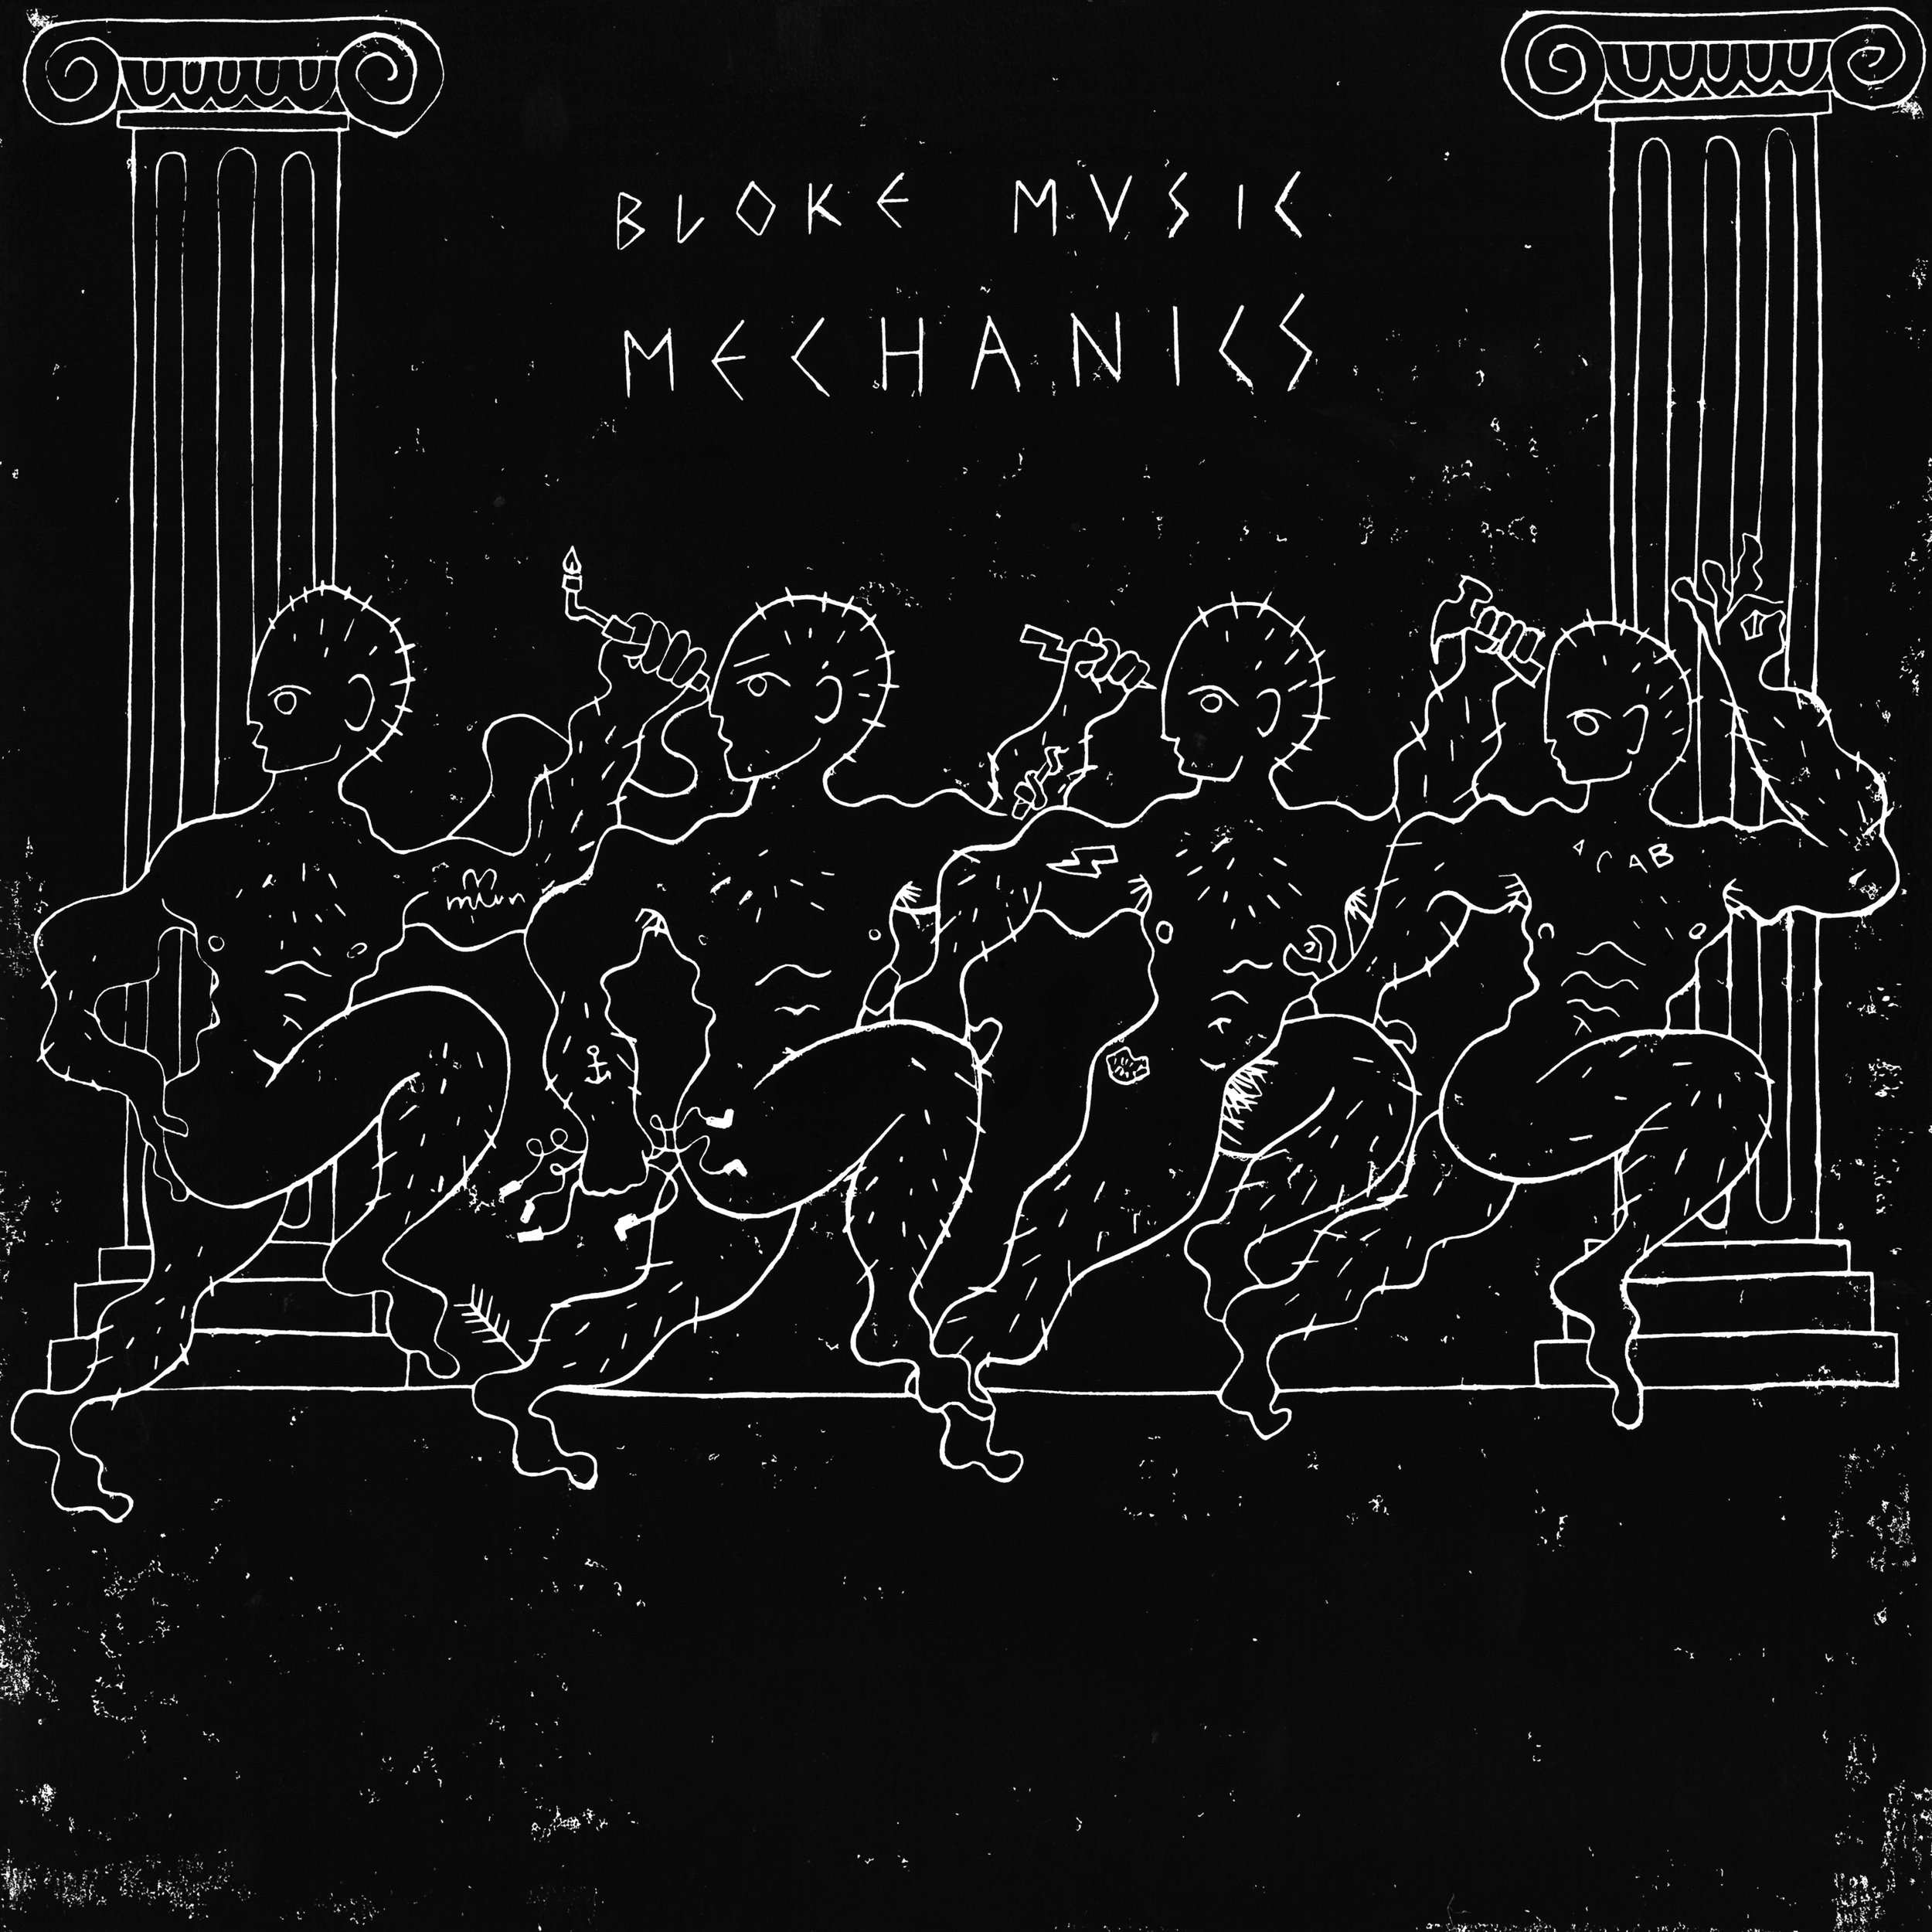 bloke music mechanics [ 2500 x 2500 Pixel ]